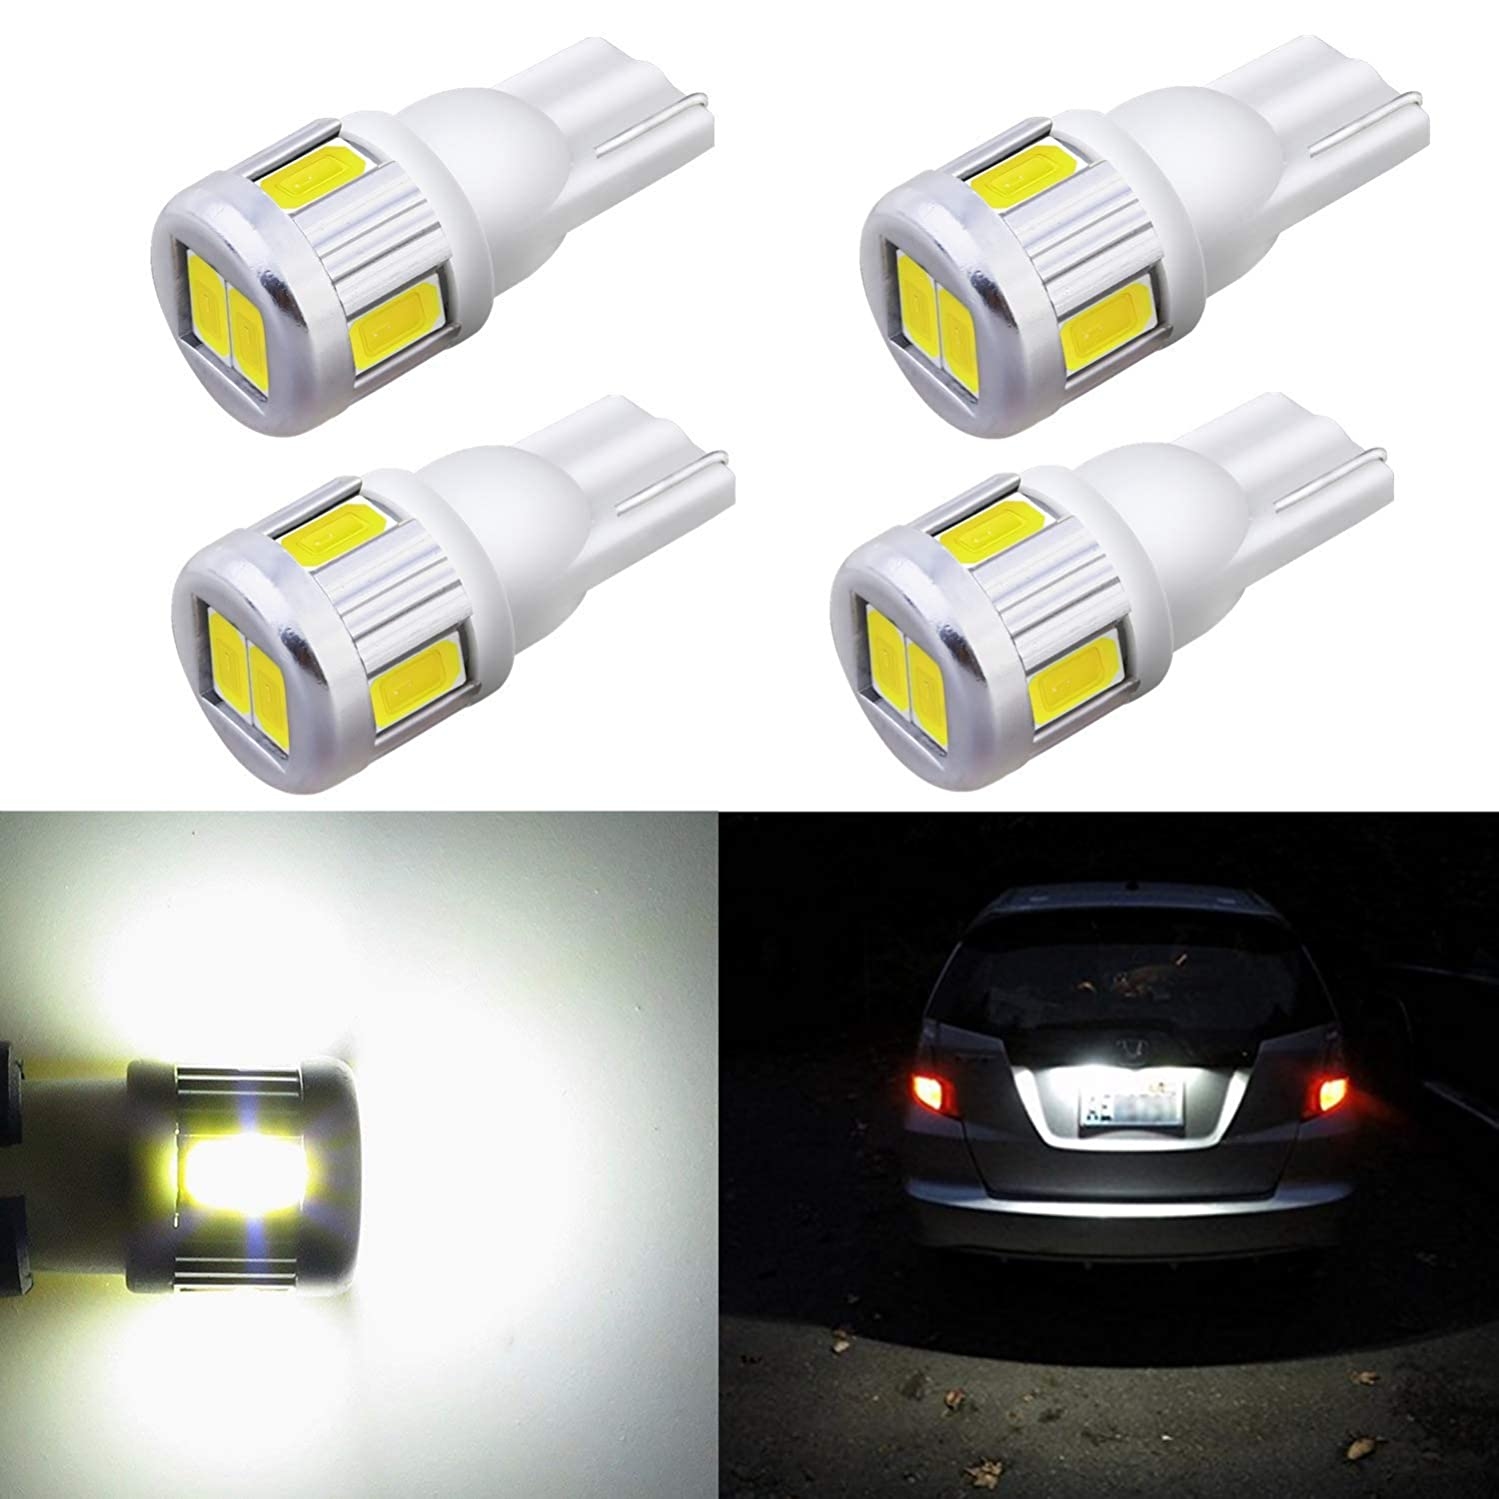 Alla Lighting 4x T10 168 194 LED White Bulbs Super Bright Samsung 5630 SMD T10 Wedge 175 2825 W5W 194 168 LED Bulbs for Interior Map Dome Trunk Exterior License Plate Marker Lights, 6000K Xenon White